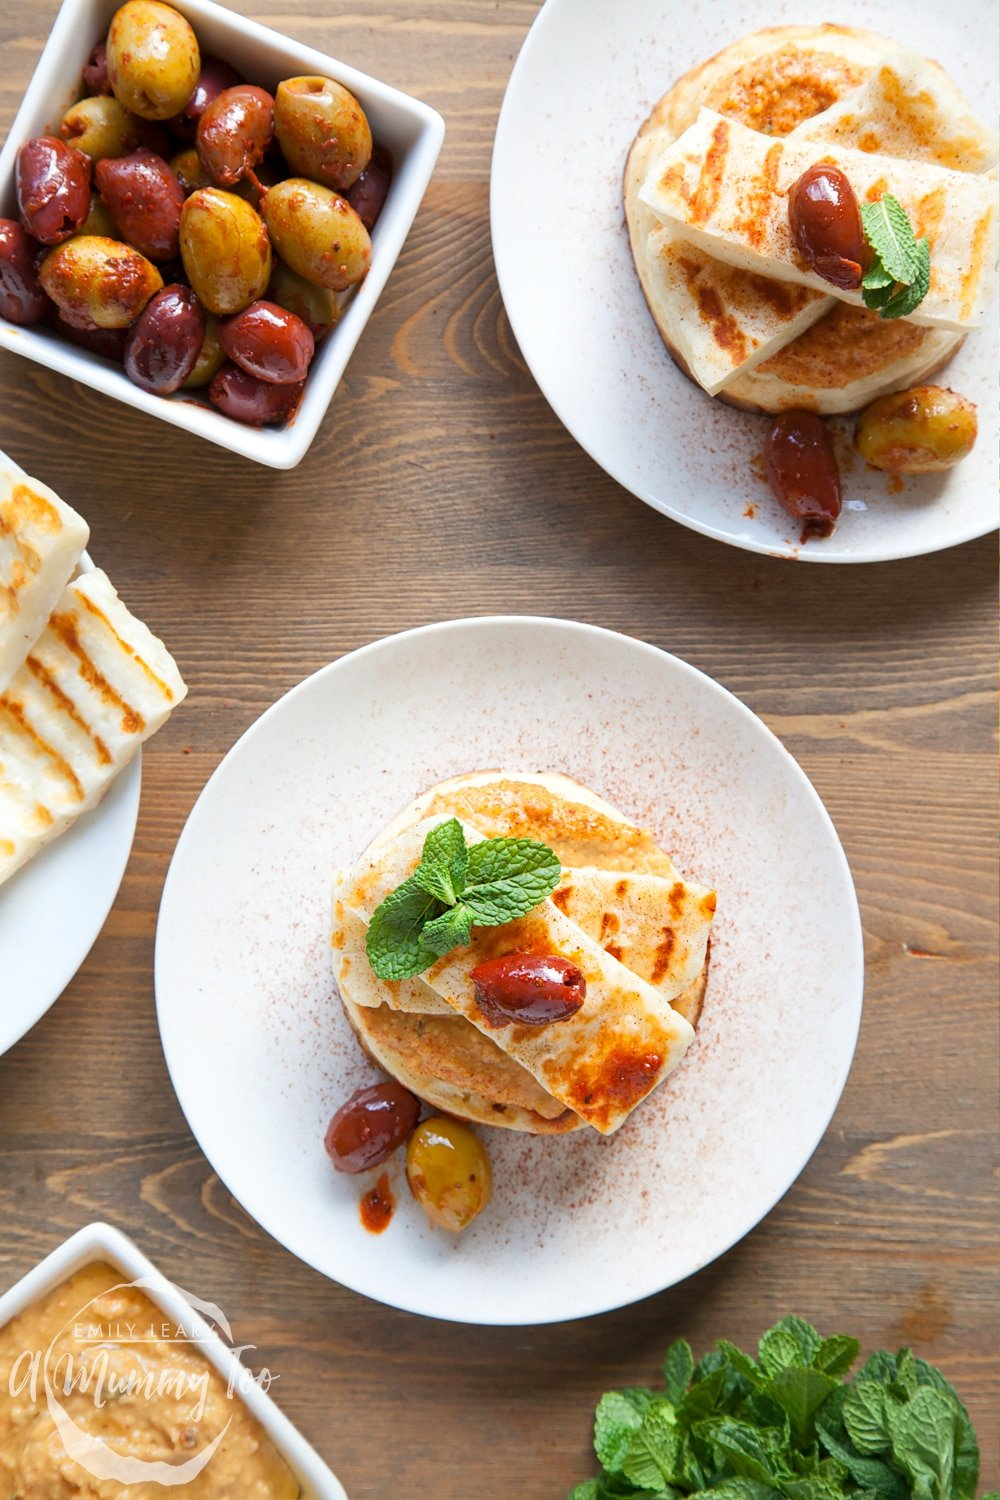 Finish your gluten-free meze-inspired crumpets with a topping of harissa olives and mint leaves!